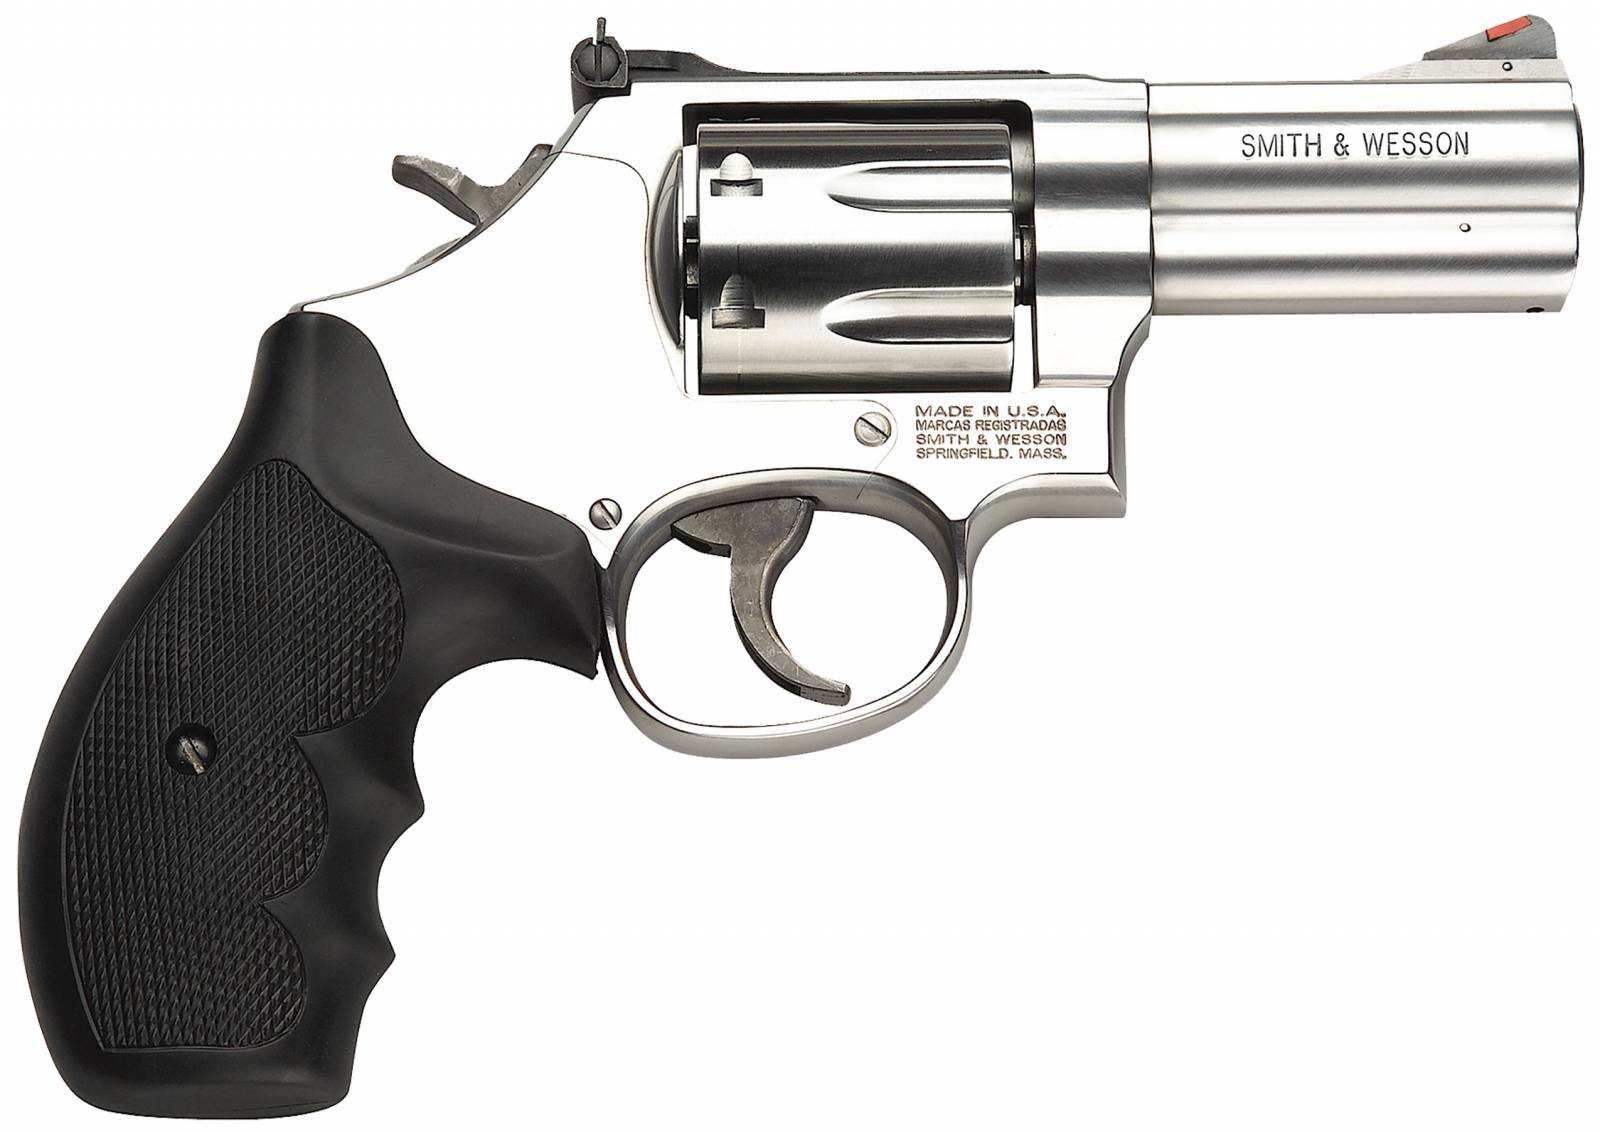 Smith & Wesson 164300 686 Plus Single/Double 357 Magnum 3